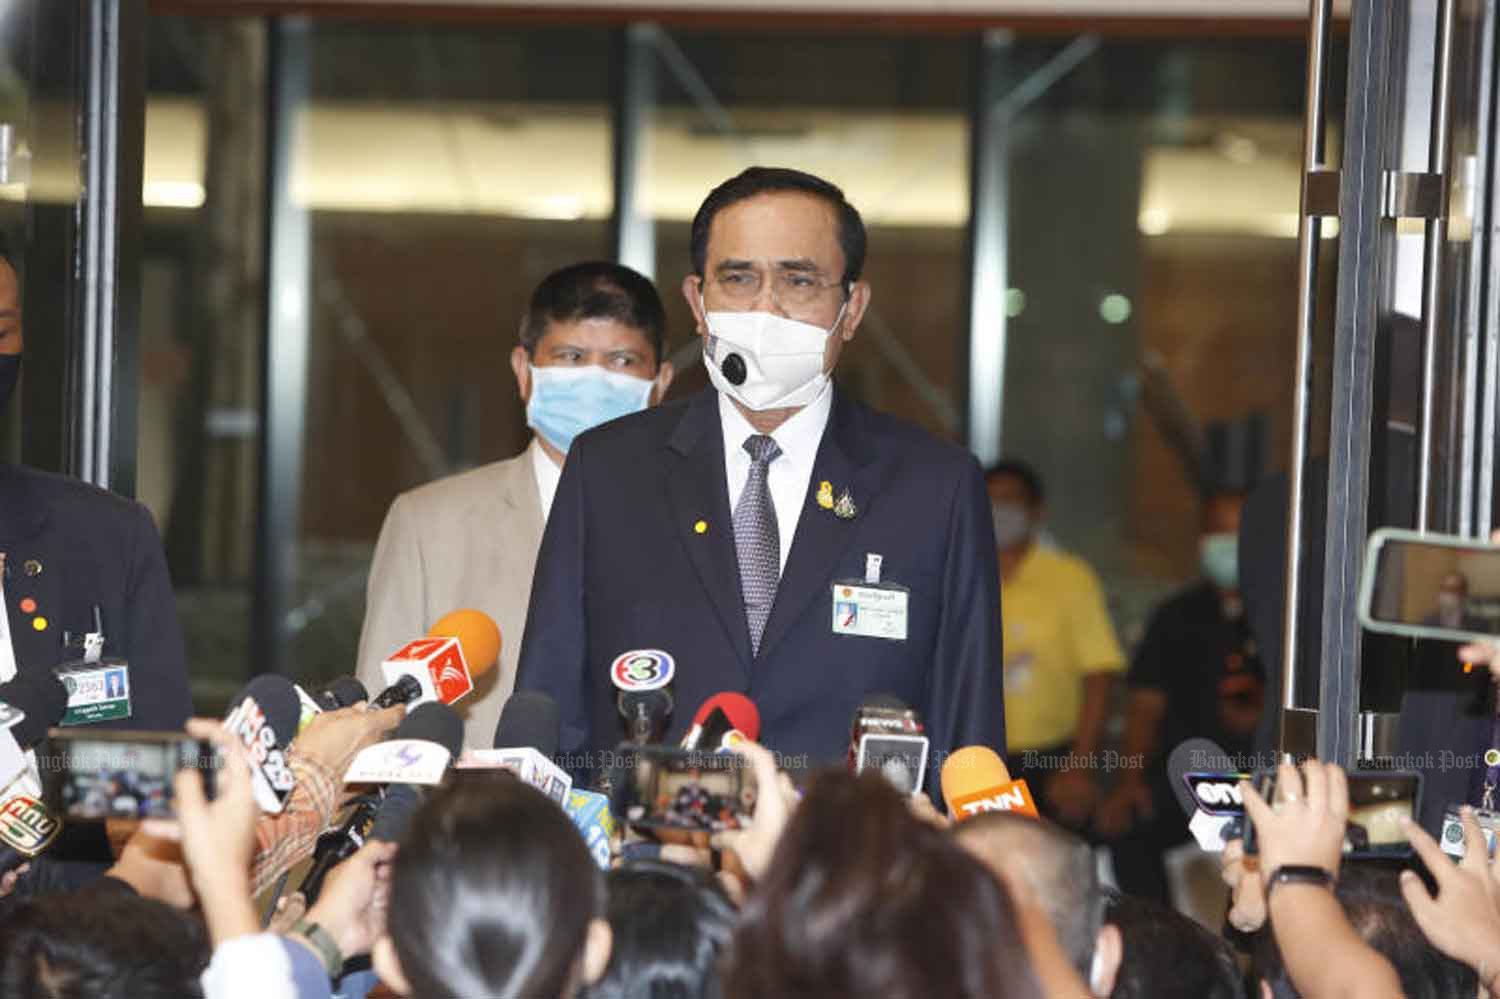 Prime Minister Prayut Chan-o-cha is leaving the parliament in Bangkok after a debate on the government's financial plan to handle Covid-19 impacts on Thursday. (Photo: Pattarapong Chatpattarasill)